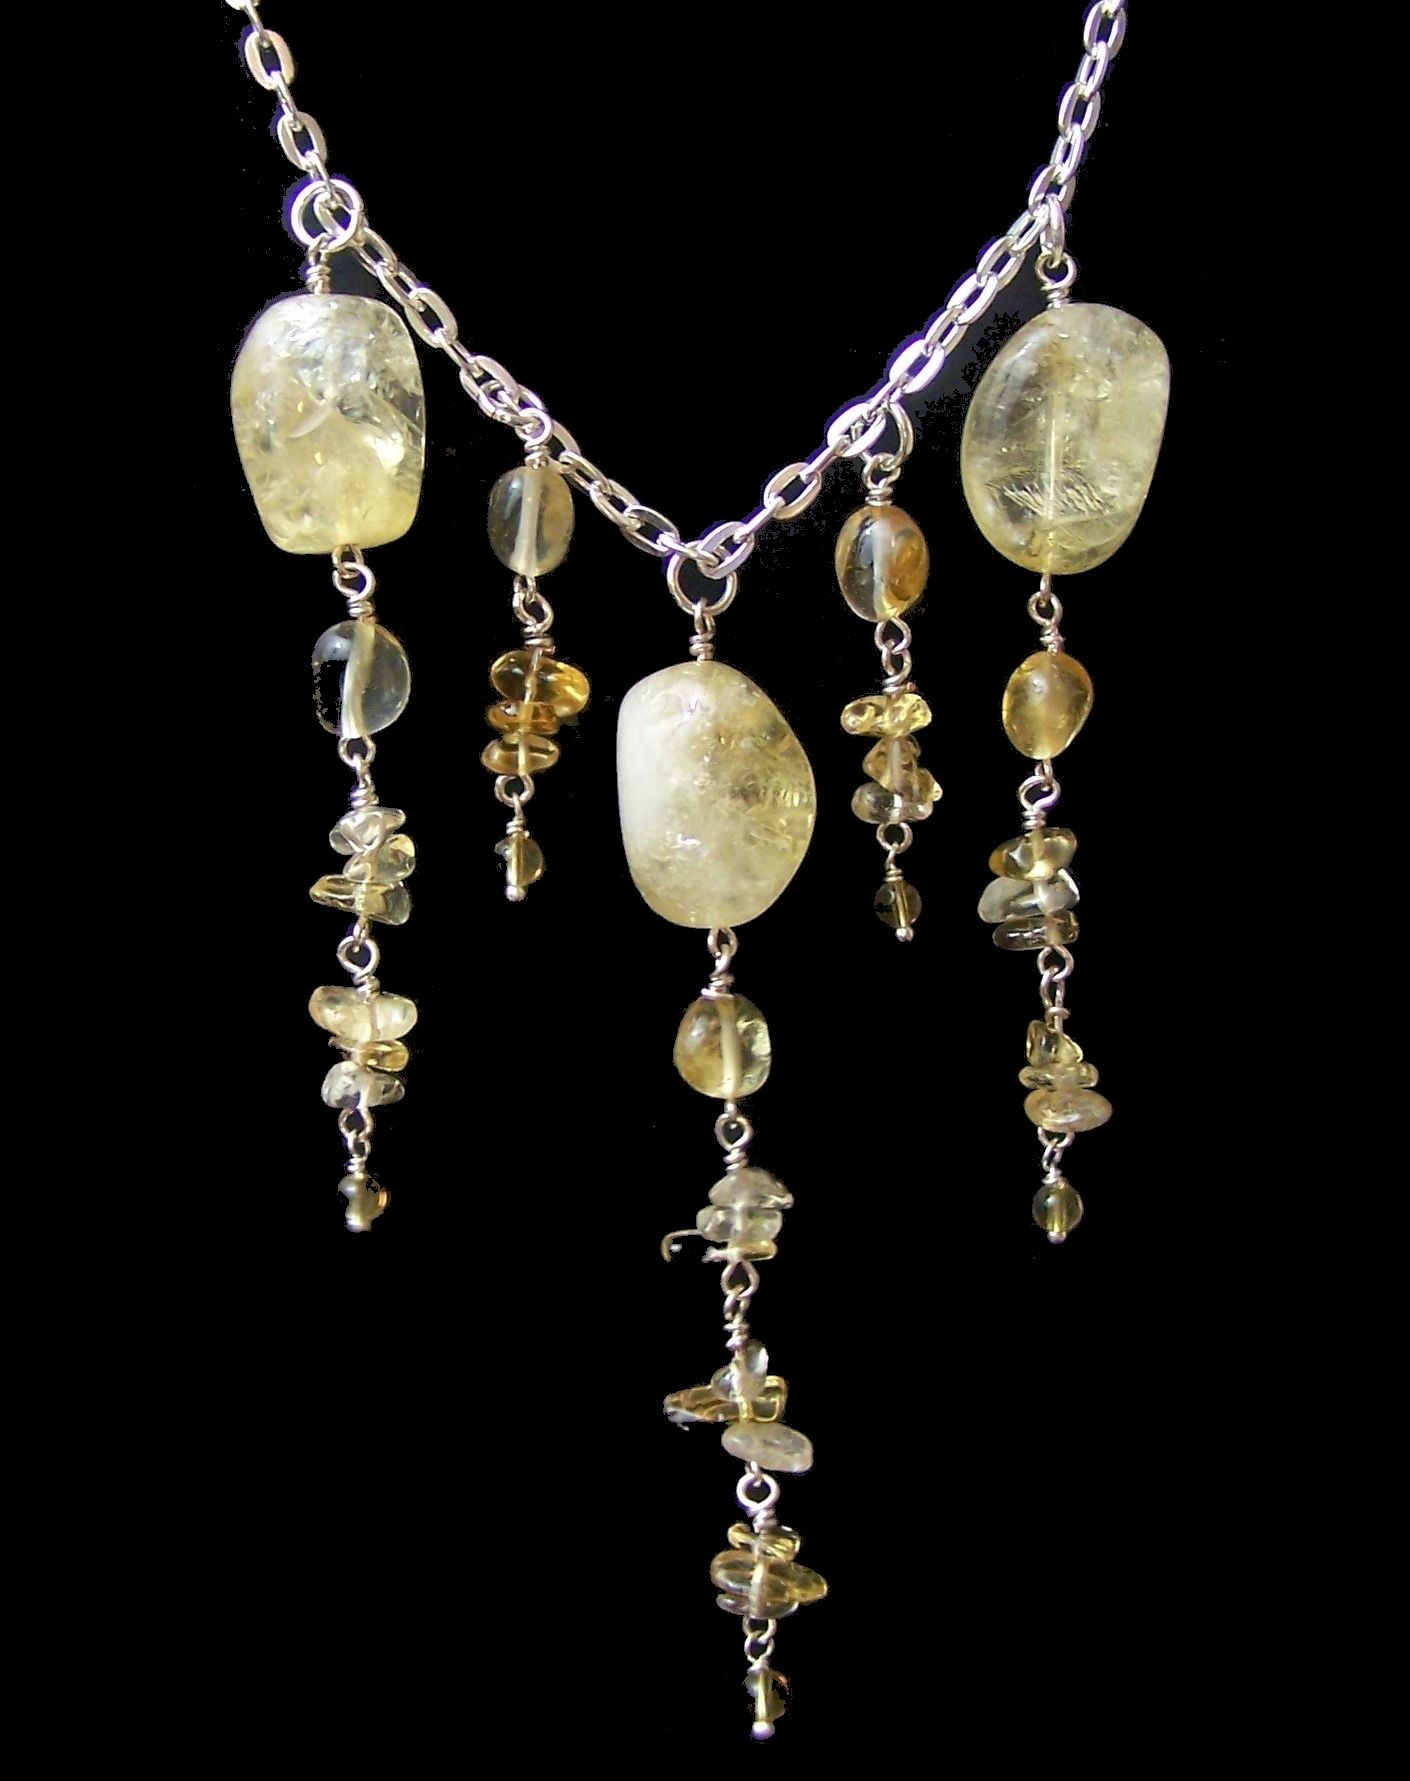 Citrine Dreams Necklace Free Beaded Jewelry Making Pattern